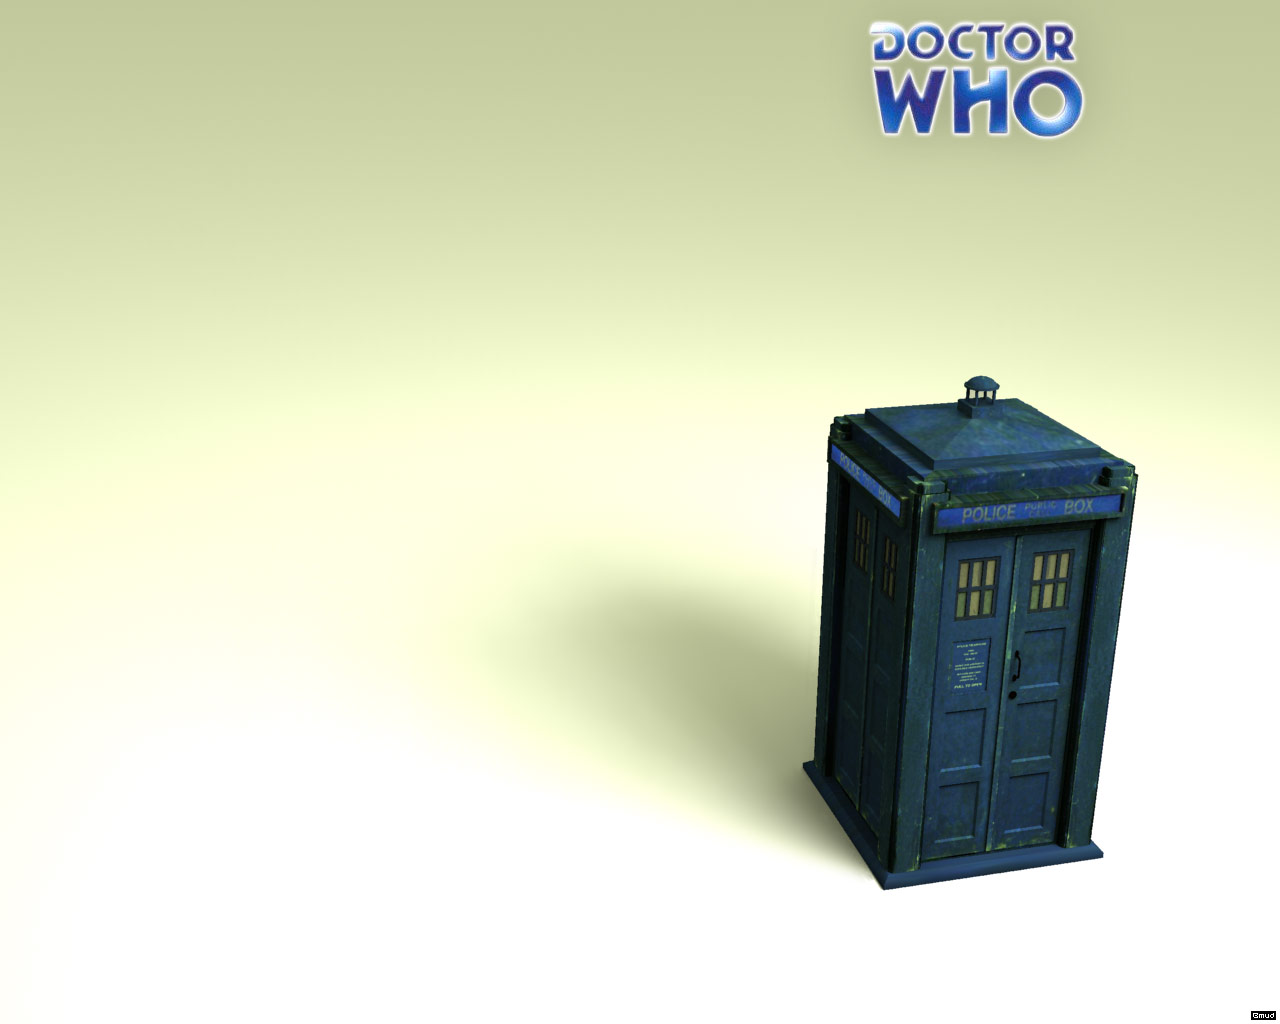 Doctor Who Wallpaper 113